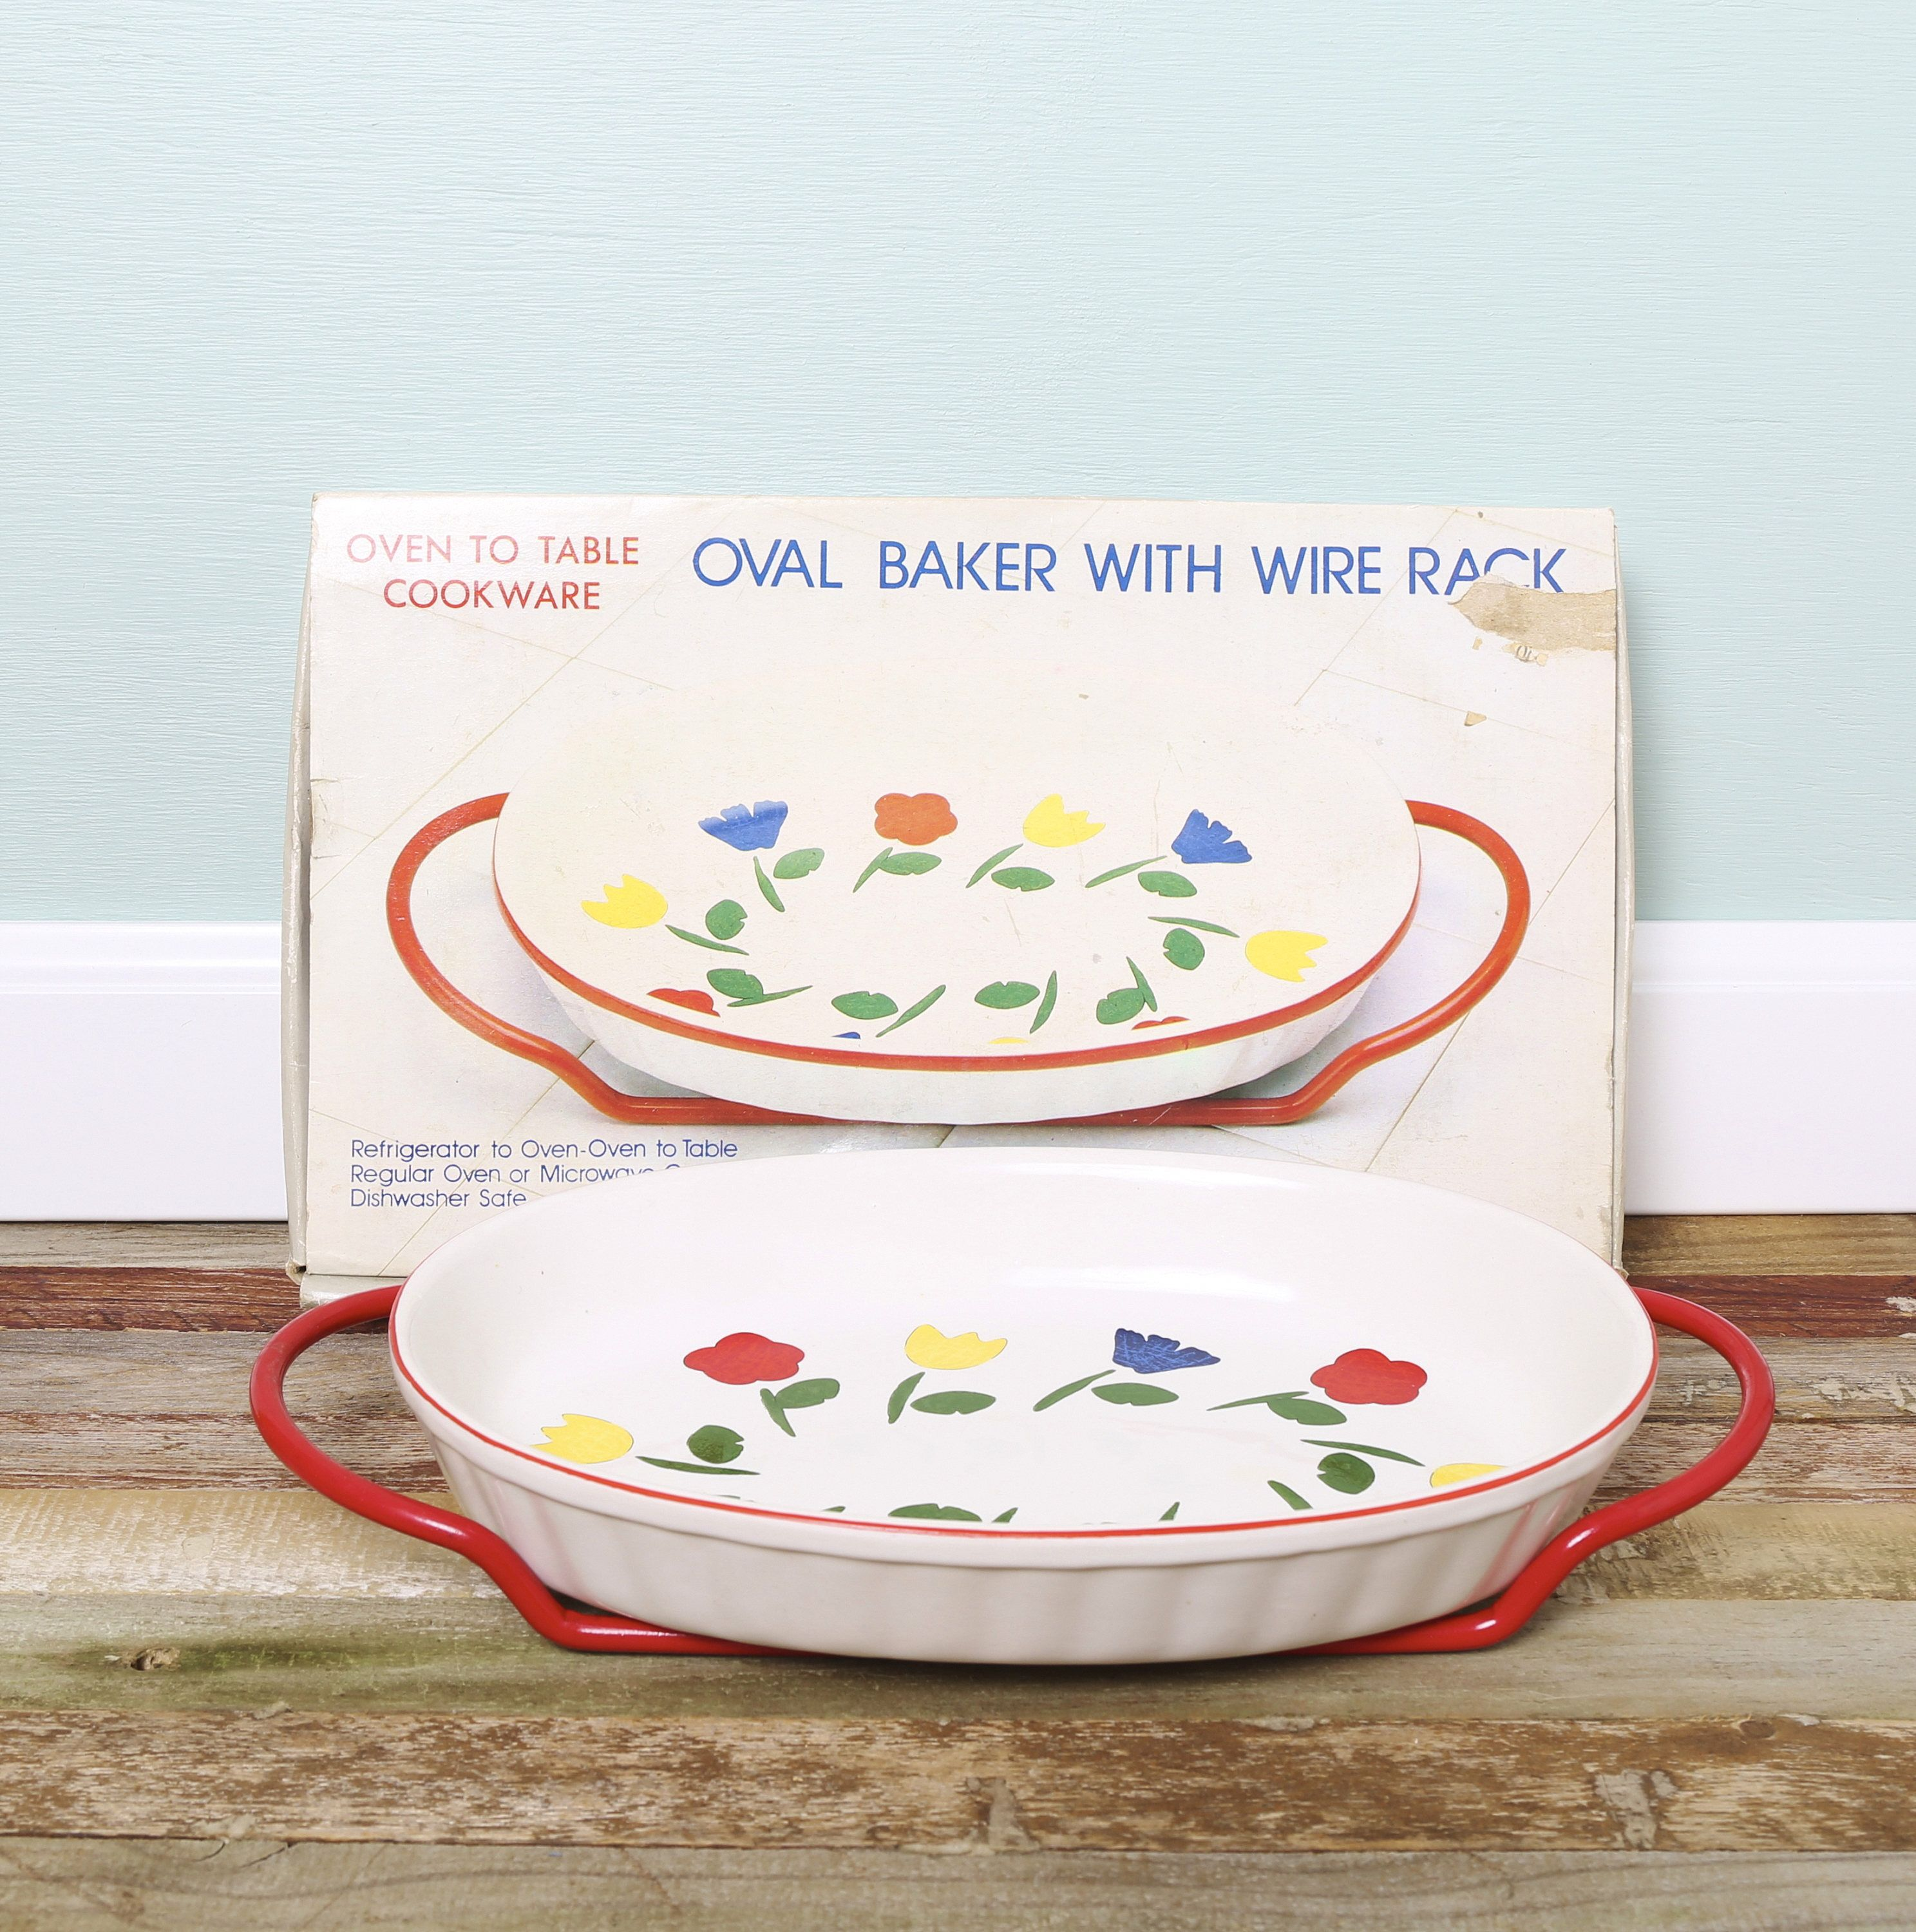 Tulip Oval Serving Baker With Red Wire Rack Oval Casserole Dish Frige Oven  Table Bakeware Cookware Vintage Casserole With Tulips Floral By  MaisieEllens On ...